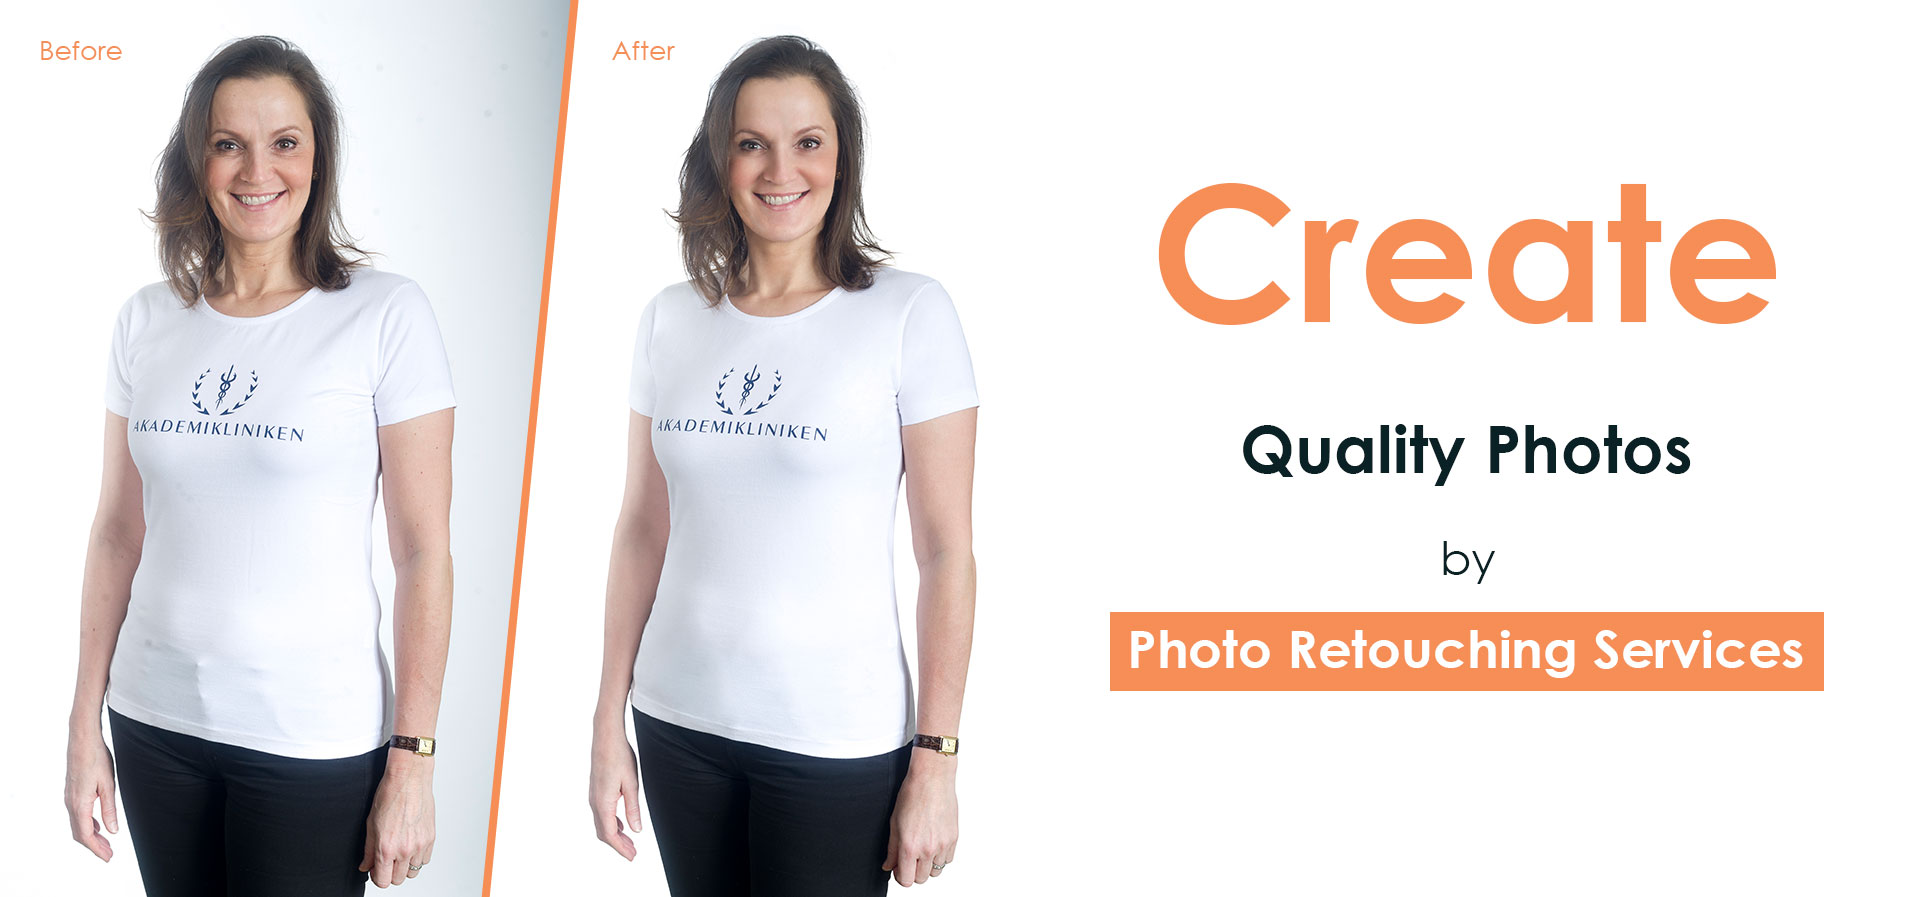 Create-Quality-Photos-by--Photo-Retouching-Services